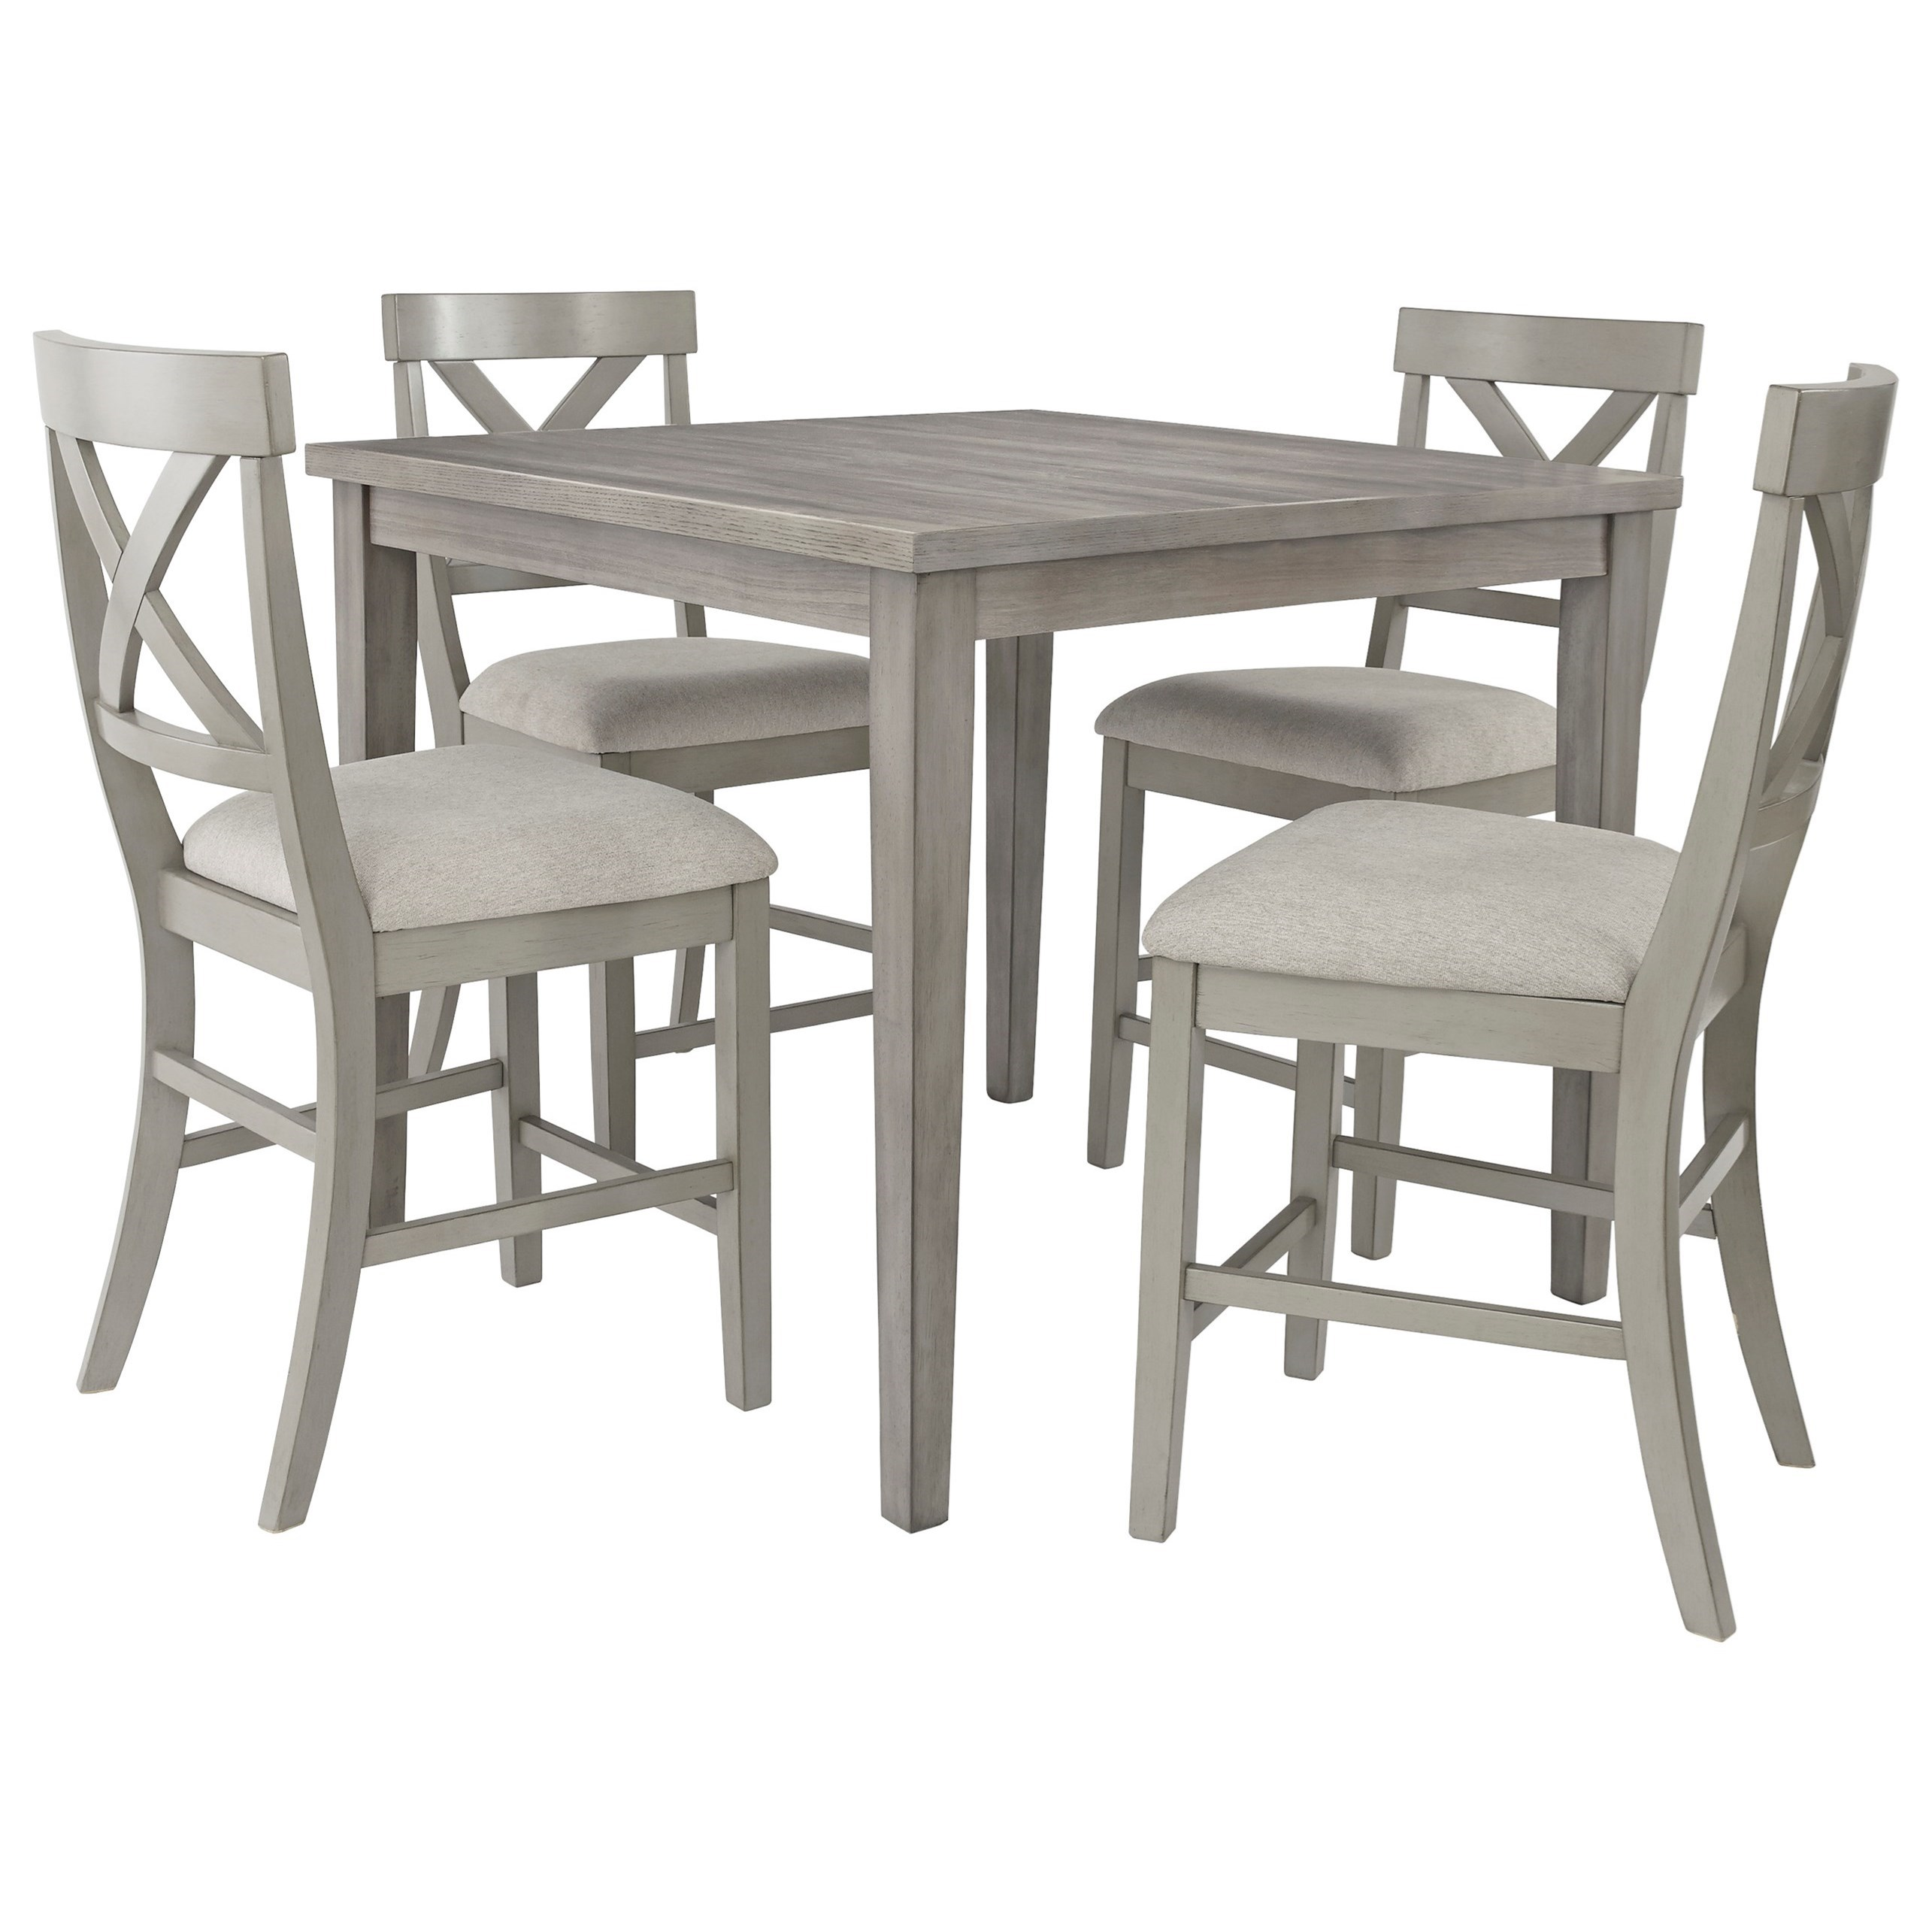 Parellen 5-Piece Counter Table and Chair Set by Benchcraft at Virginia Furniture Market